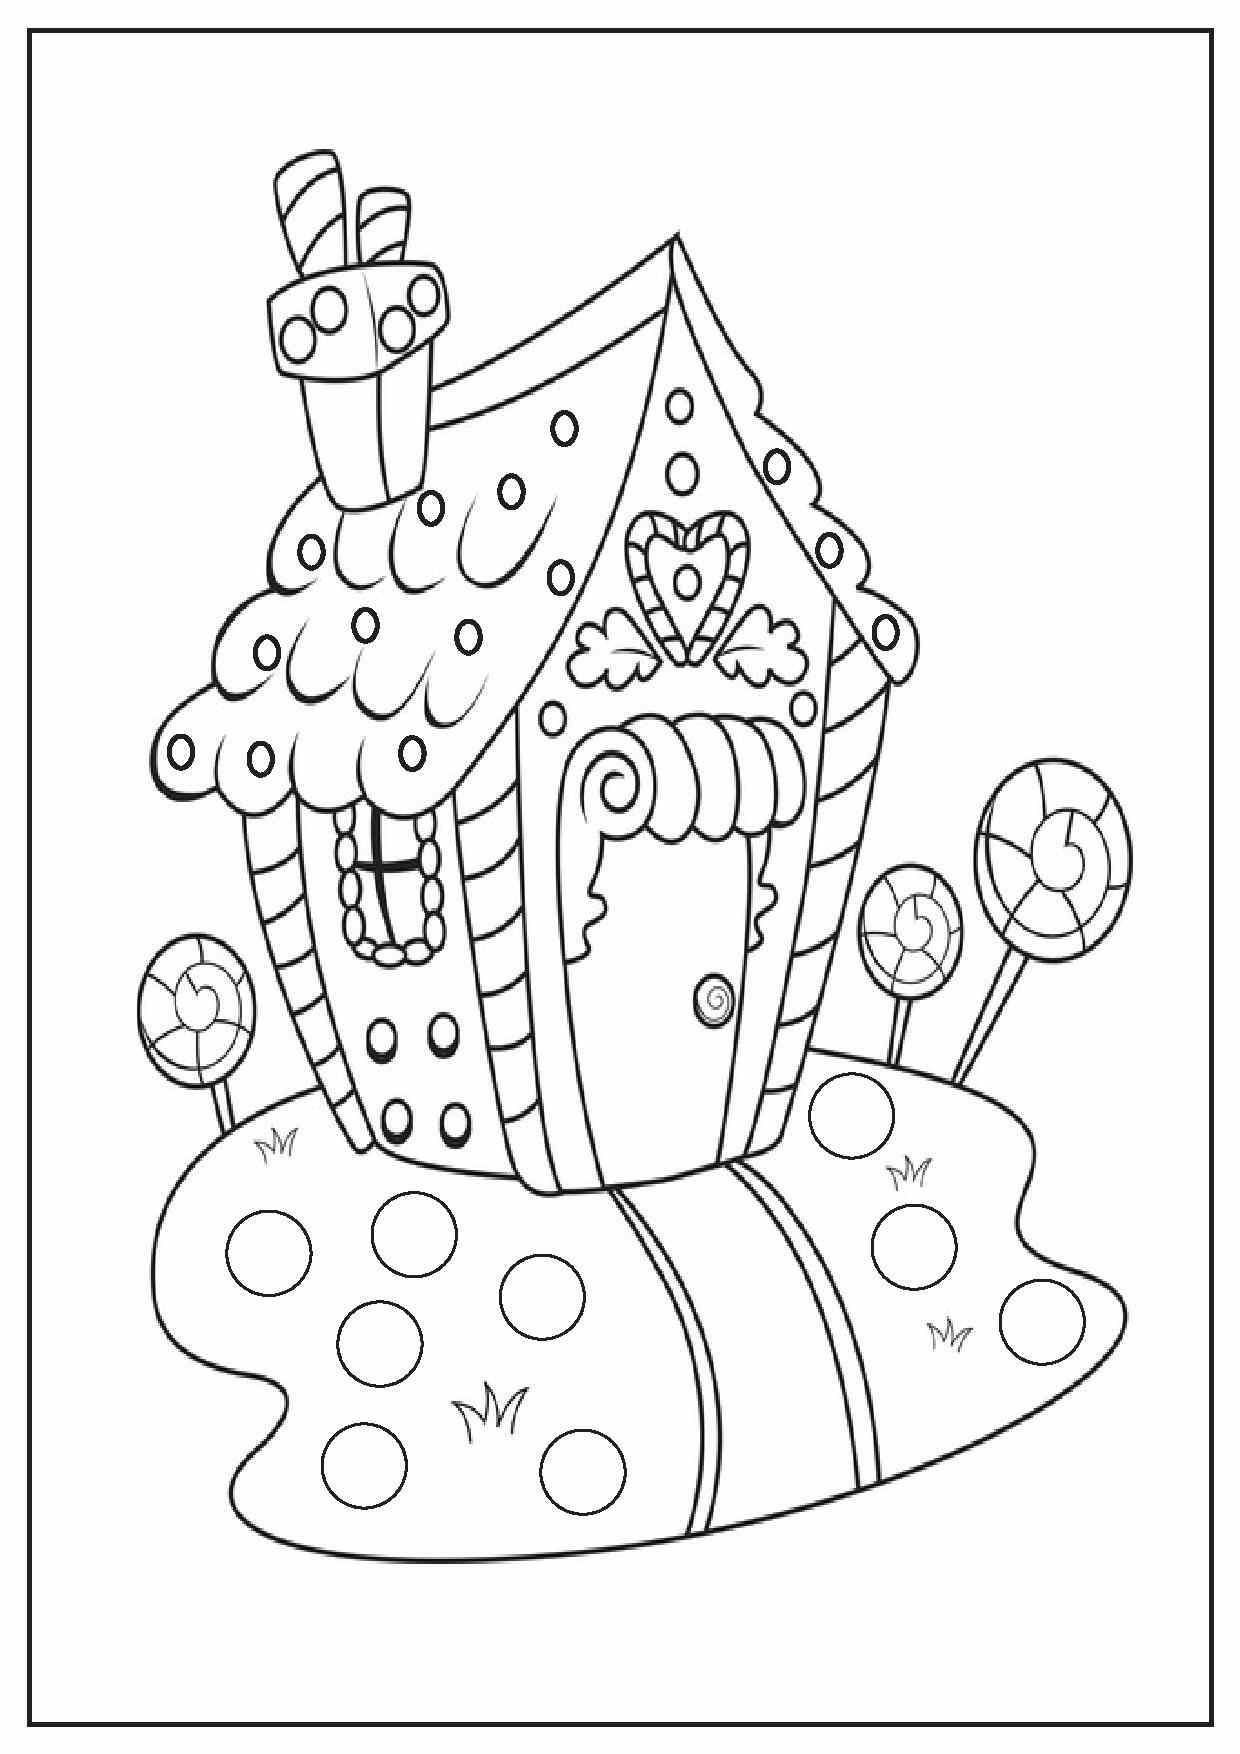 Christmas Coloring Pages You Can Print With Printable